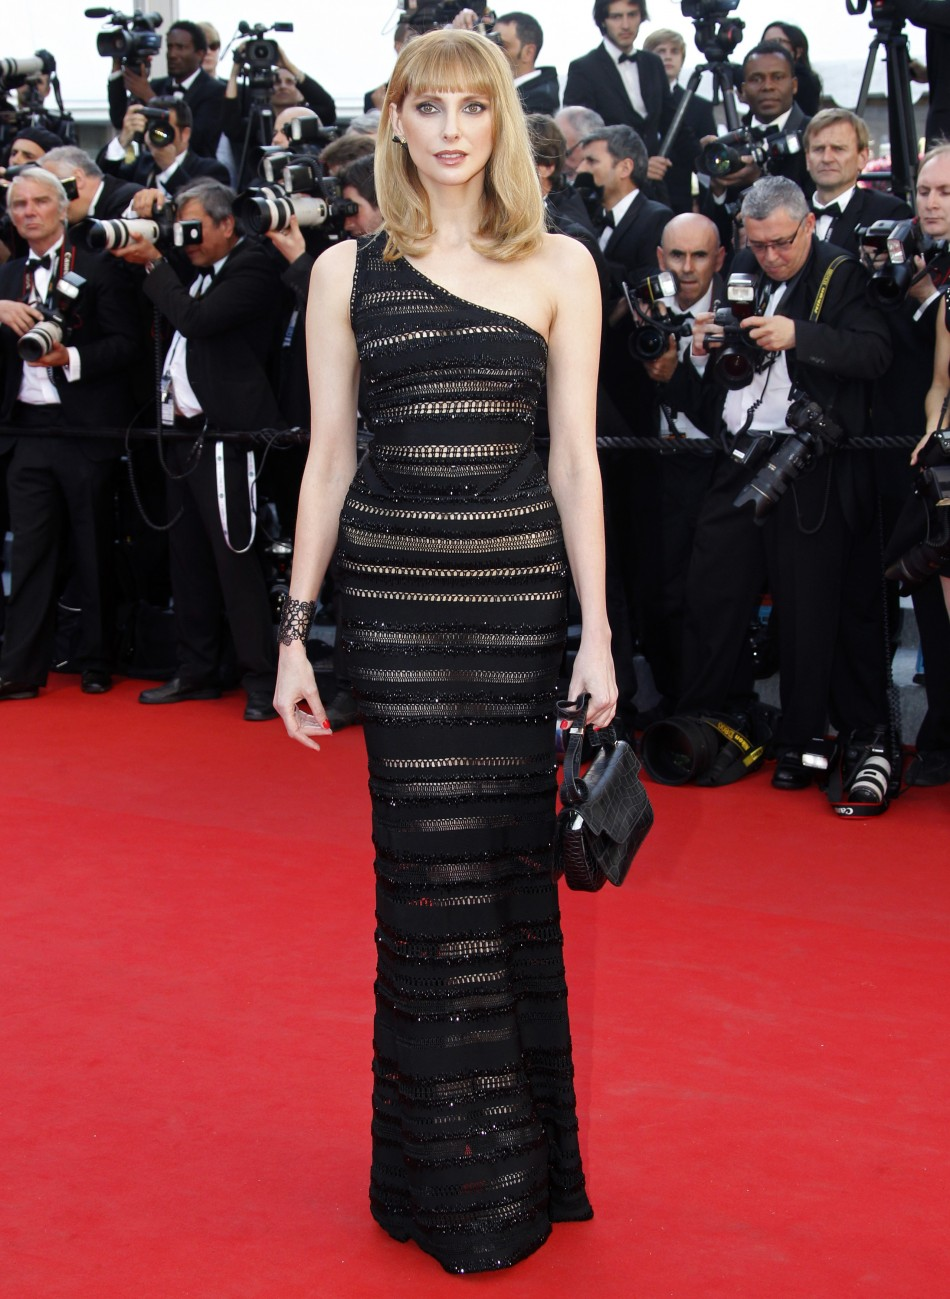 French actress Bel arrives on the red carpet for the screening of the film Moonrise Kingdom in competition at the 65th Cannes Film Festival